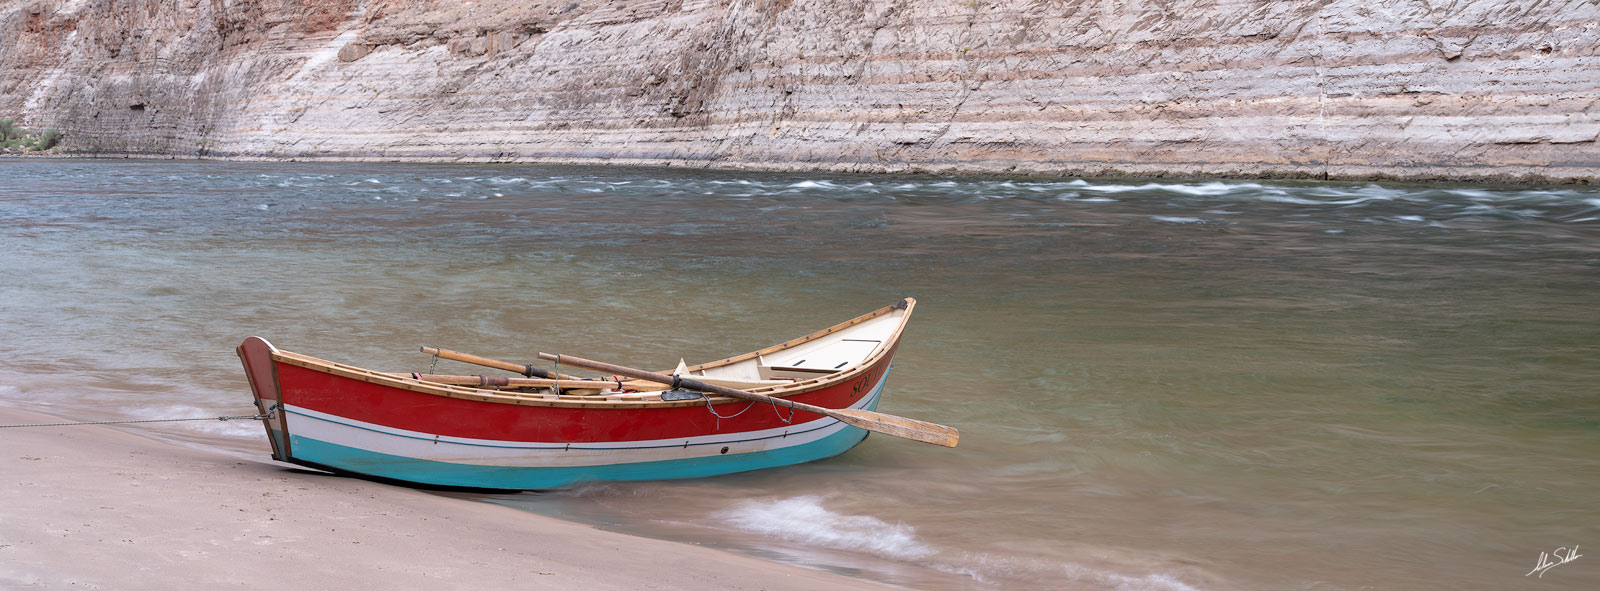 The South Fork, a wooden dory, tied to the beach at Shinumo Wash in Marble Canyon. Along the Colorado River in Grand Canyon National...